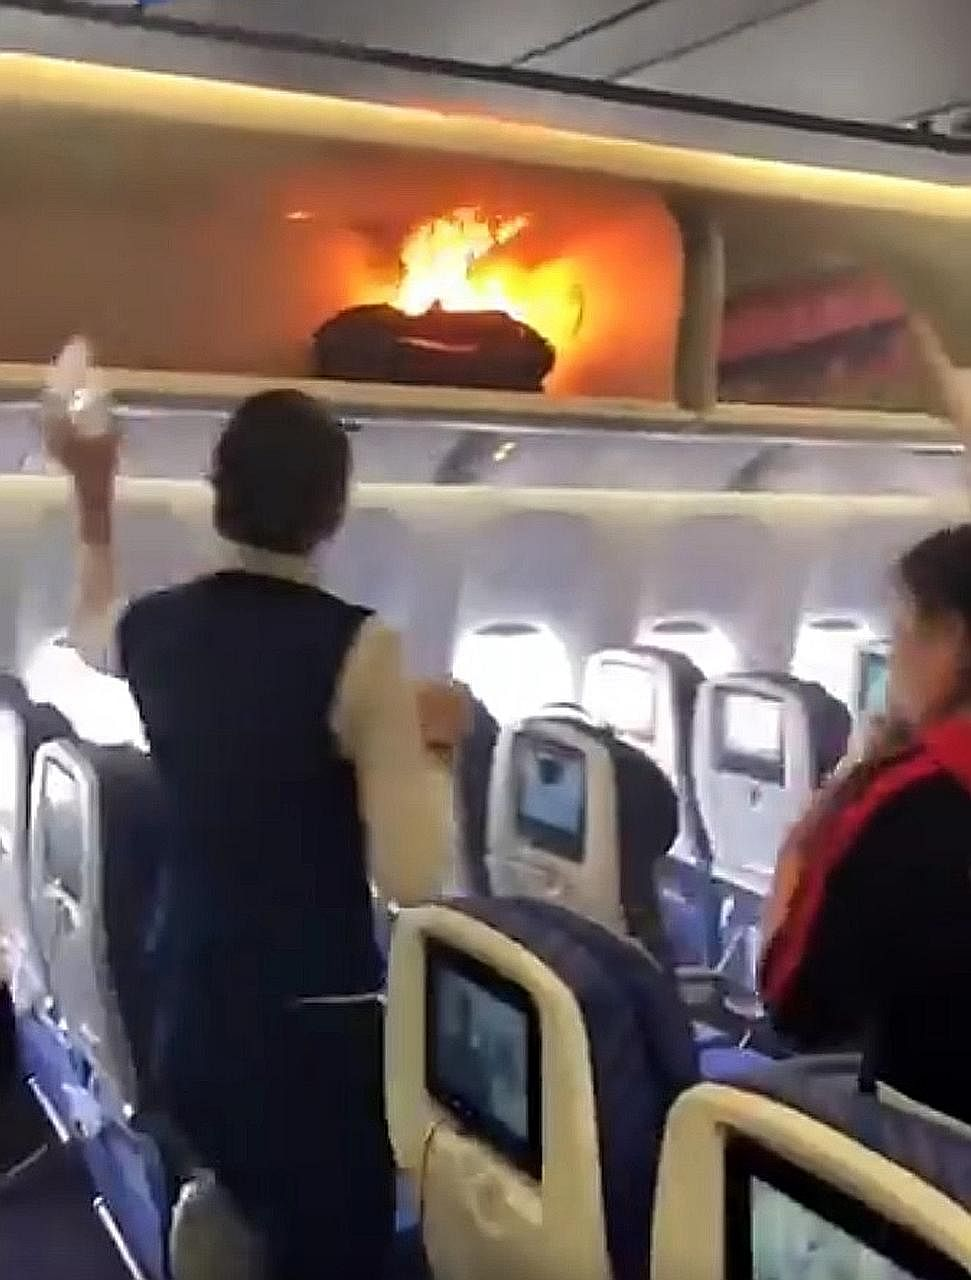 A flight attendant trying to douse the flames from a passenger's cabin bag. The incident on the China Southern Airlines plane took place as passengers were boarding in Guangzhou.